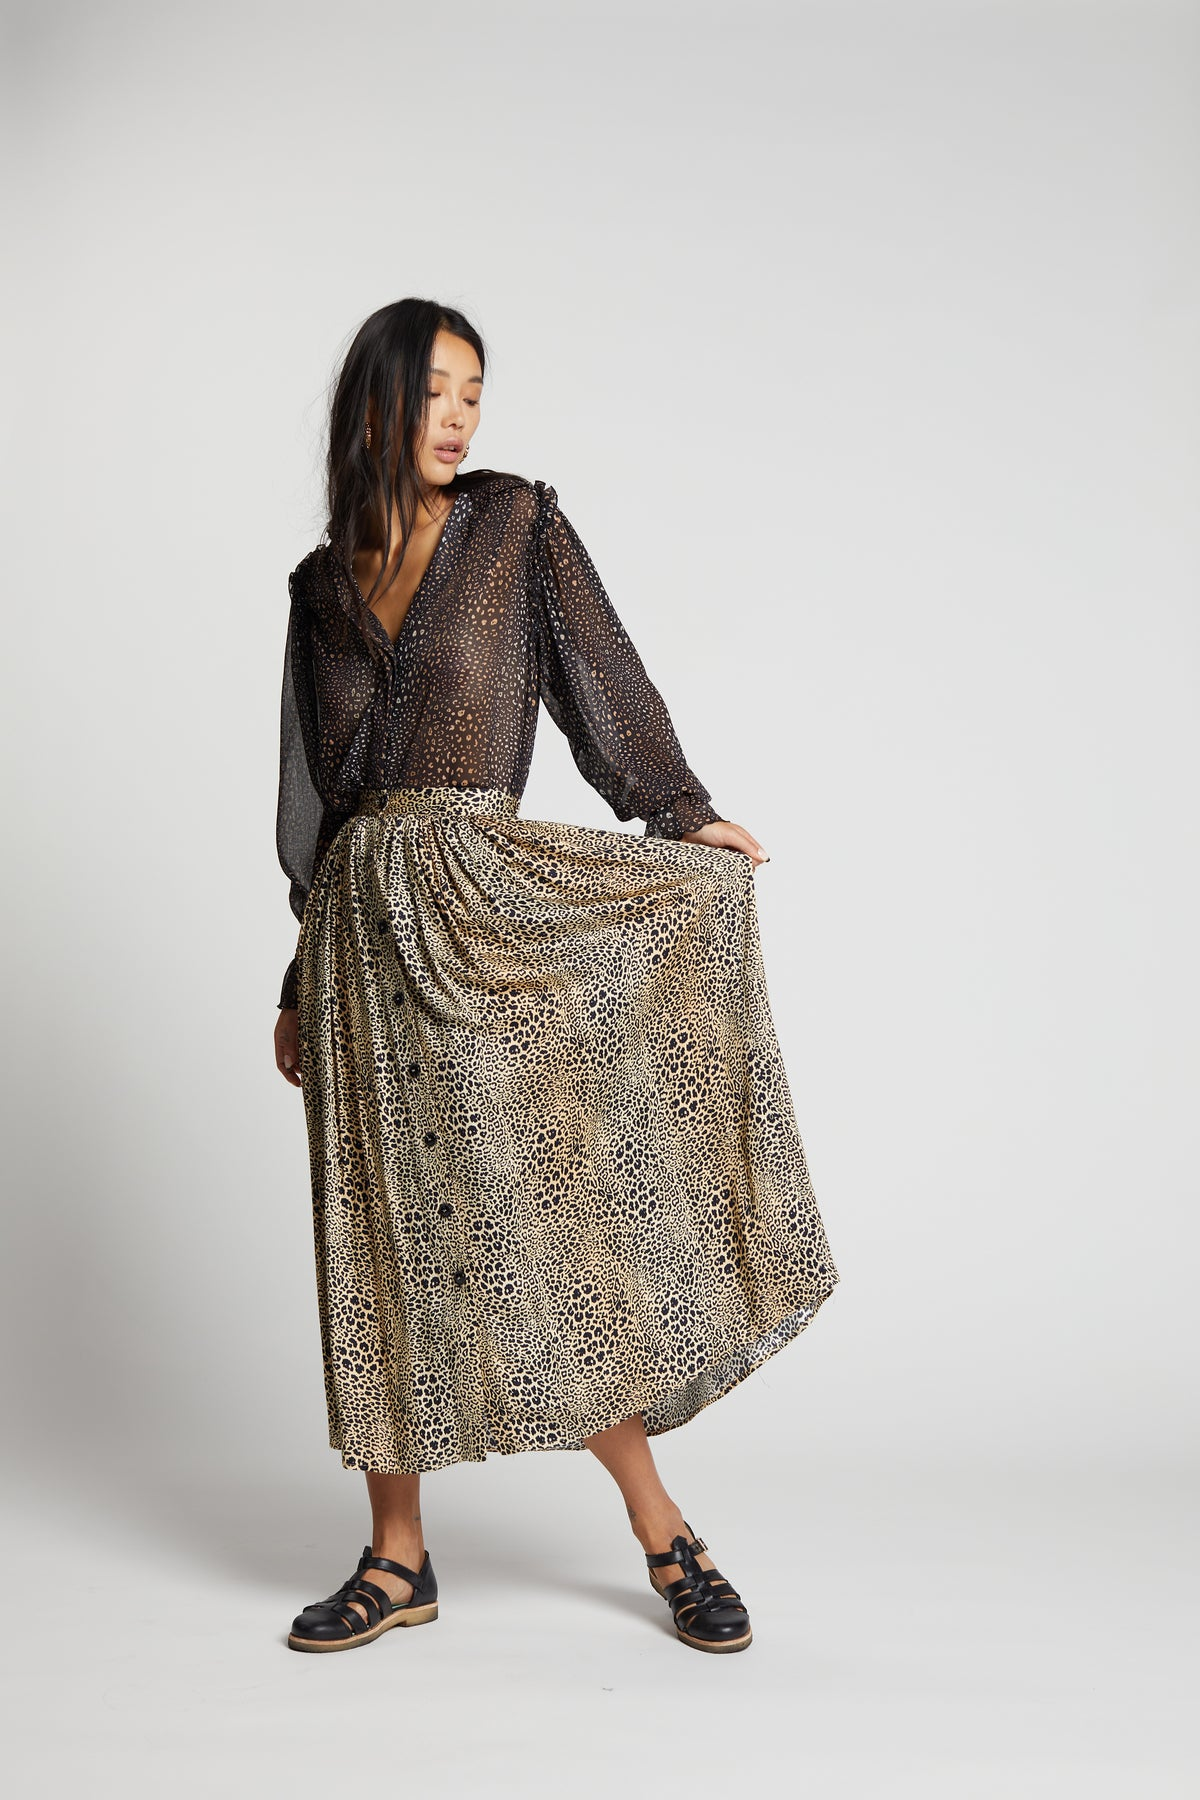 Orso skirt in Leopard print